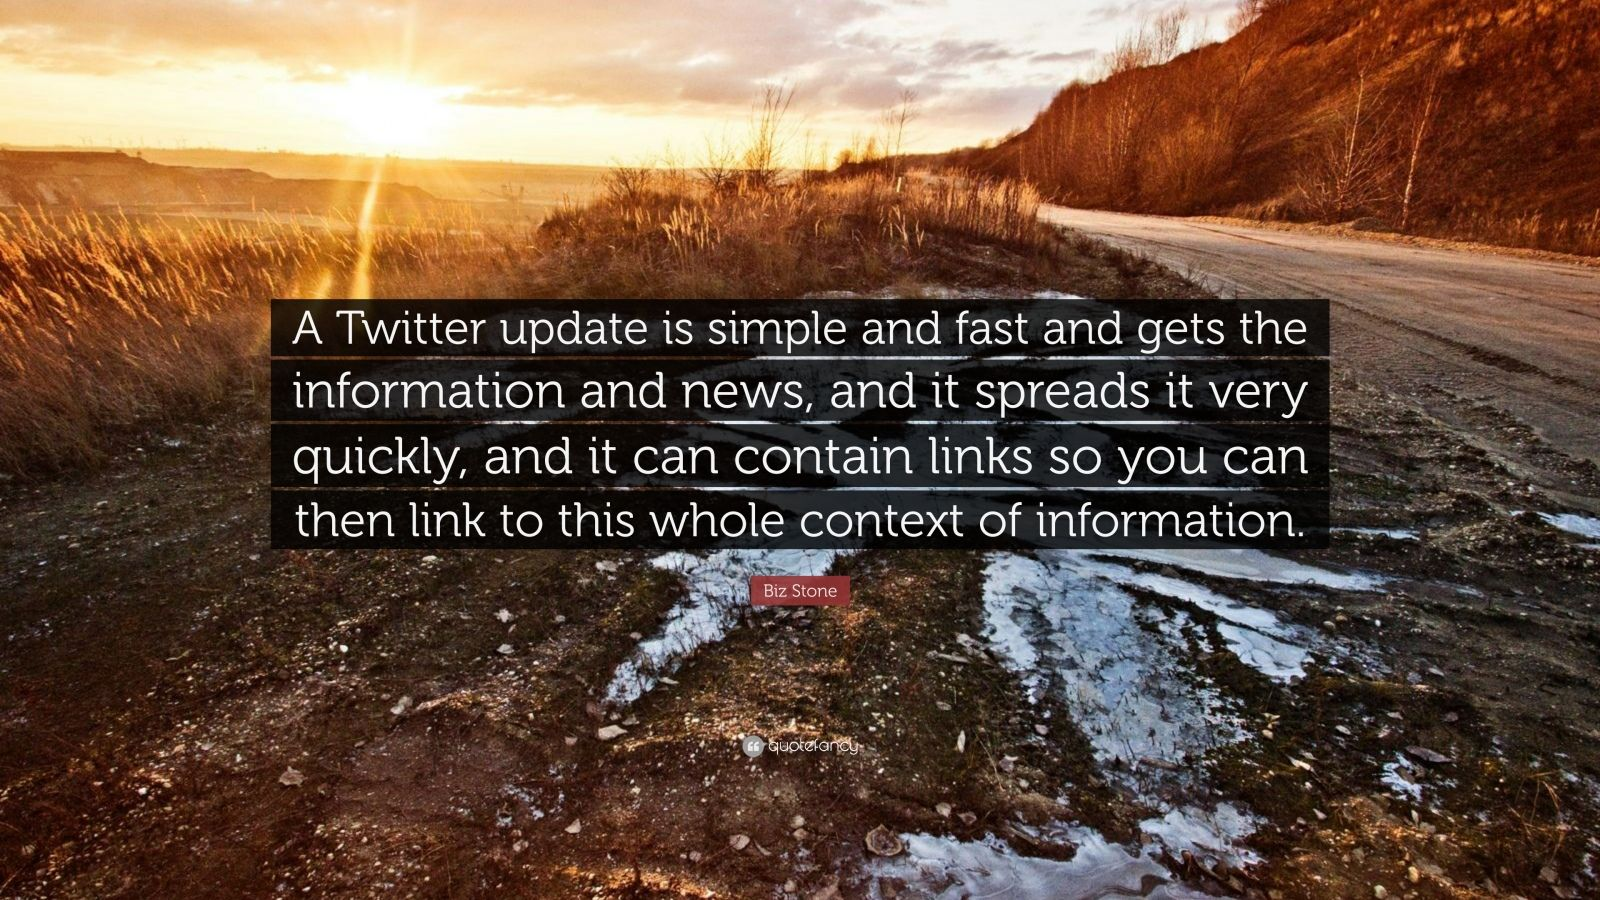 """Biz Stone Quote: """"A Twitter update is simple and fast and gets the information and news, and it spreads it very quickly, and it can contain links so you can then link to this whole context of information."""""""